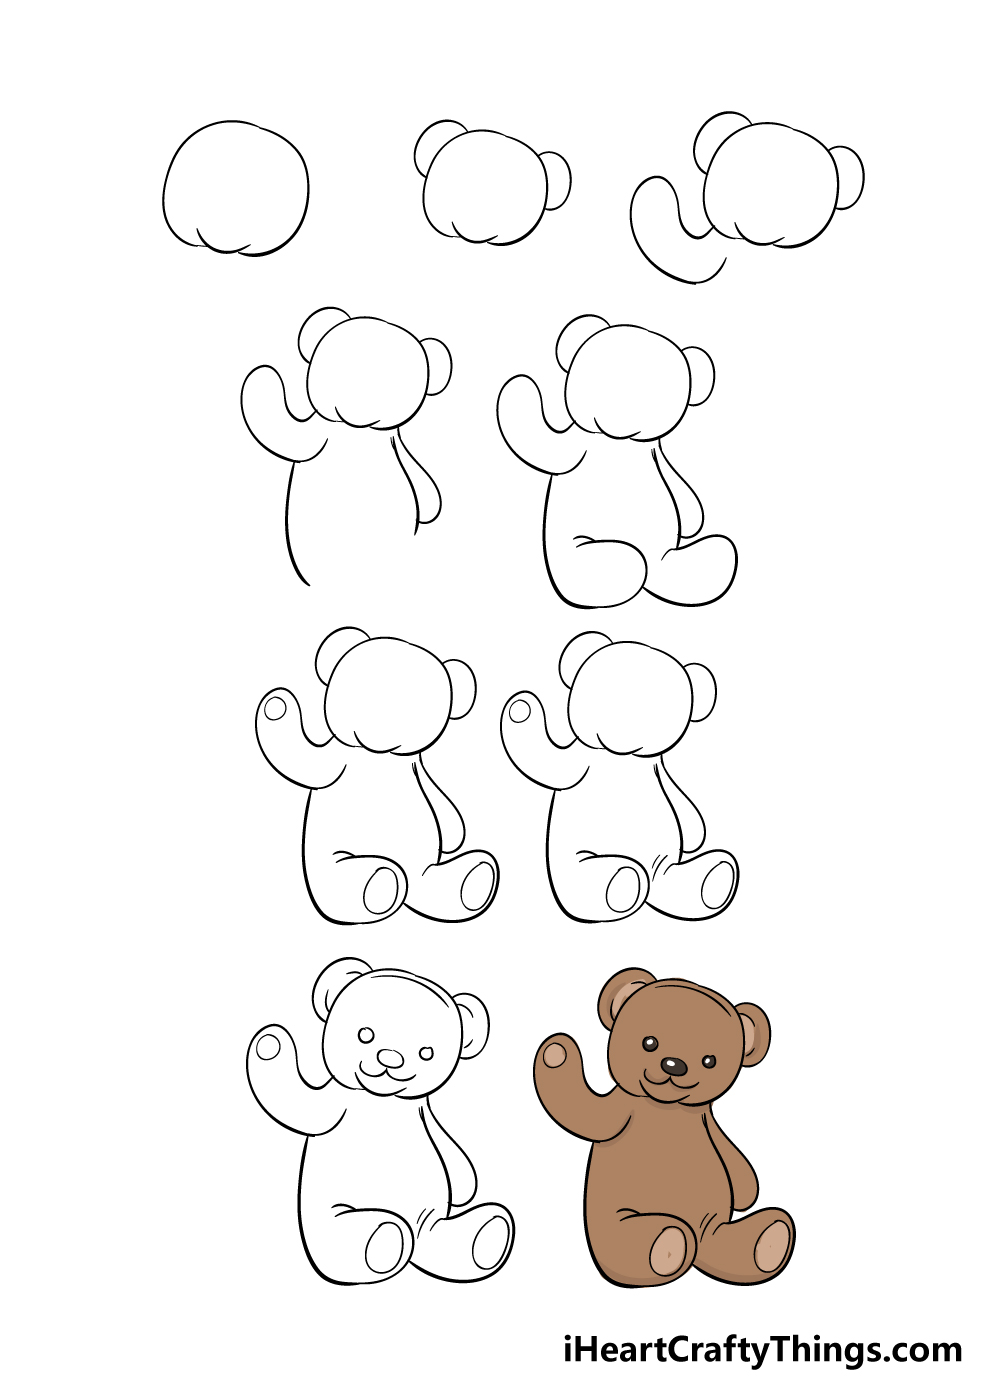 how to draw teddy bear in 9 steps